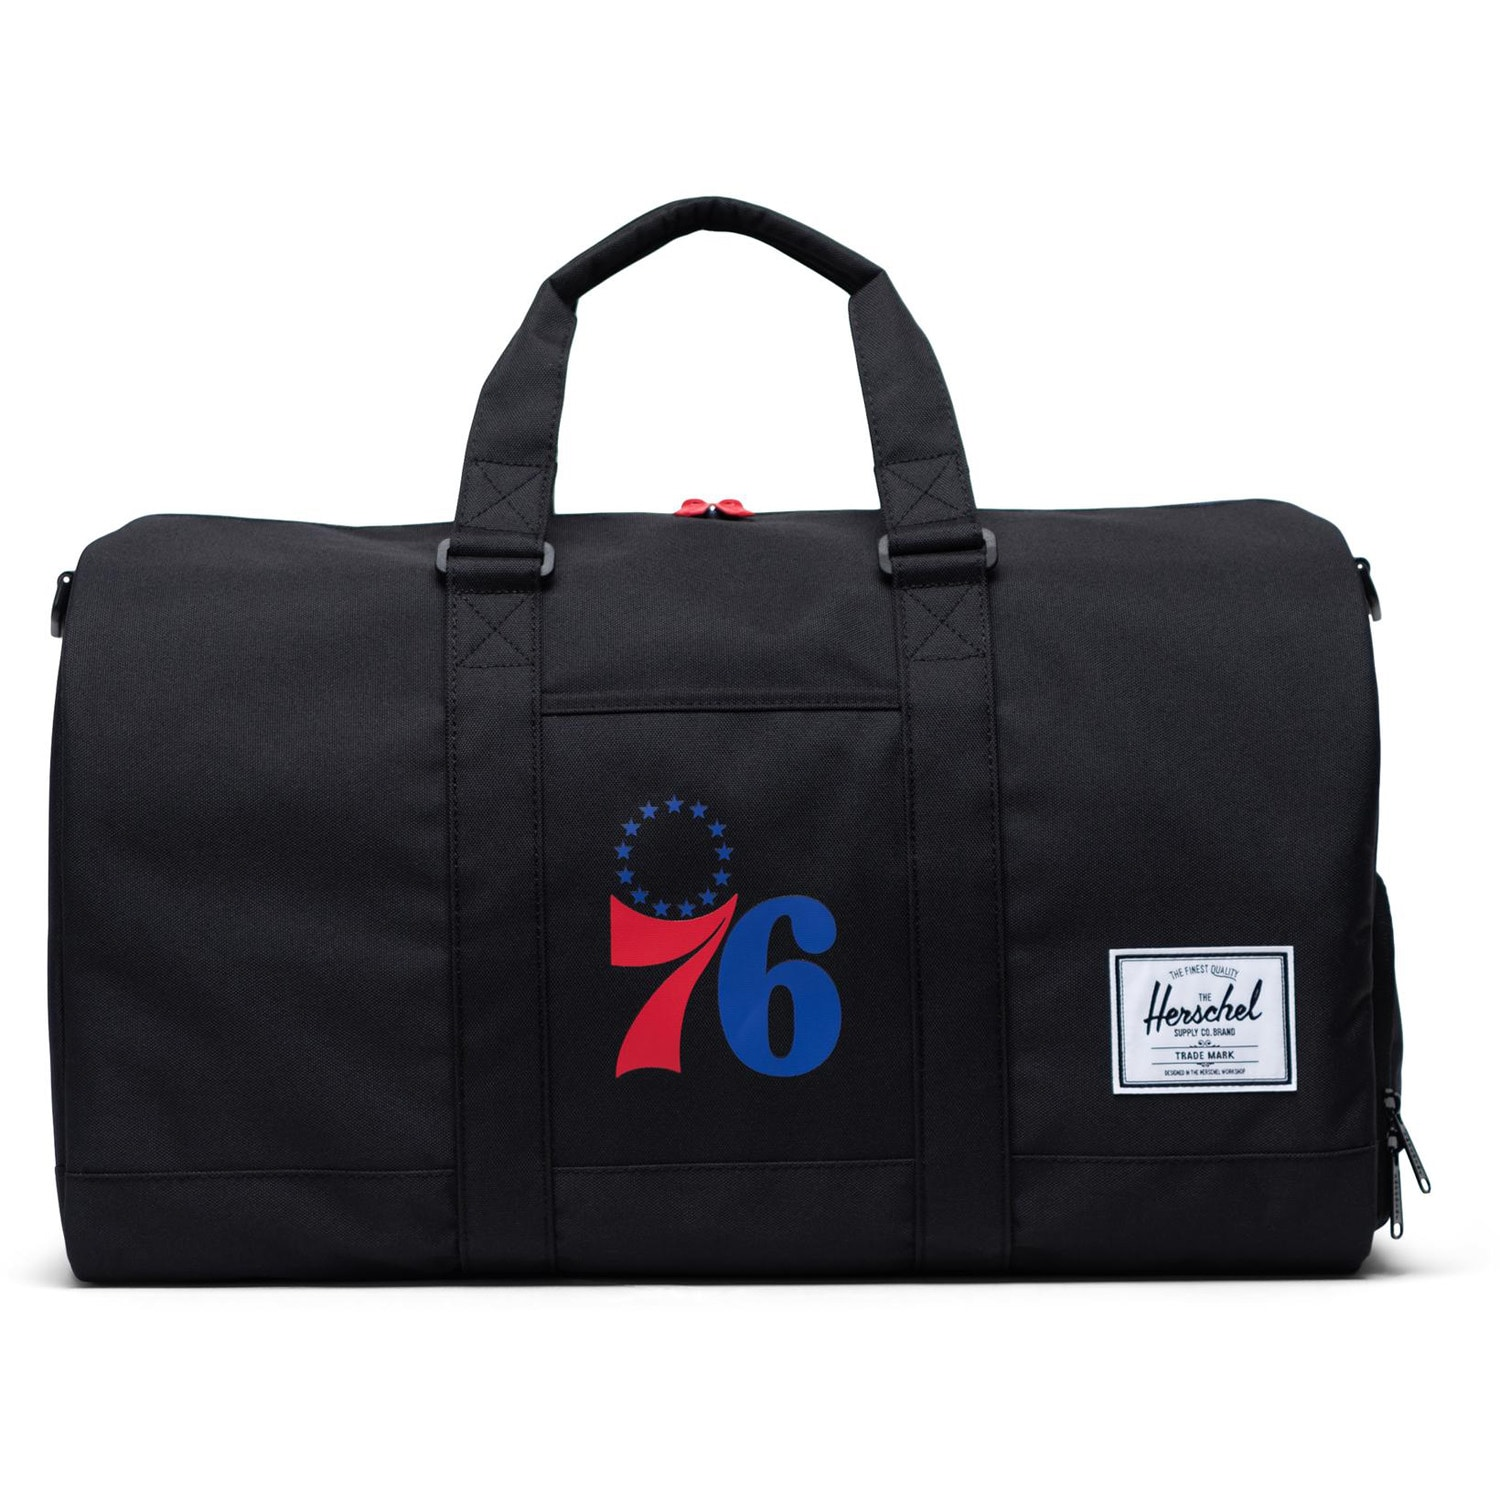 Philadelphia 76ers Herschel Supply Co. Novel Duffel Bag